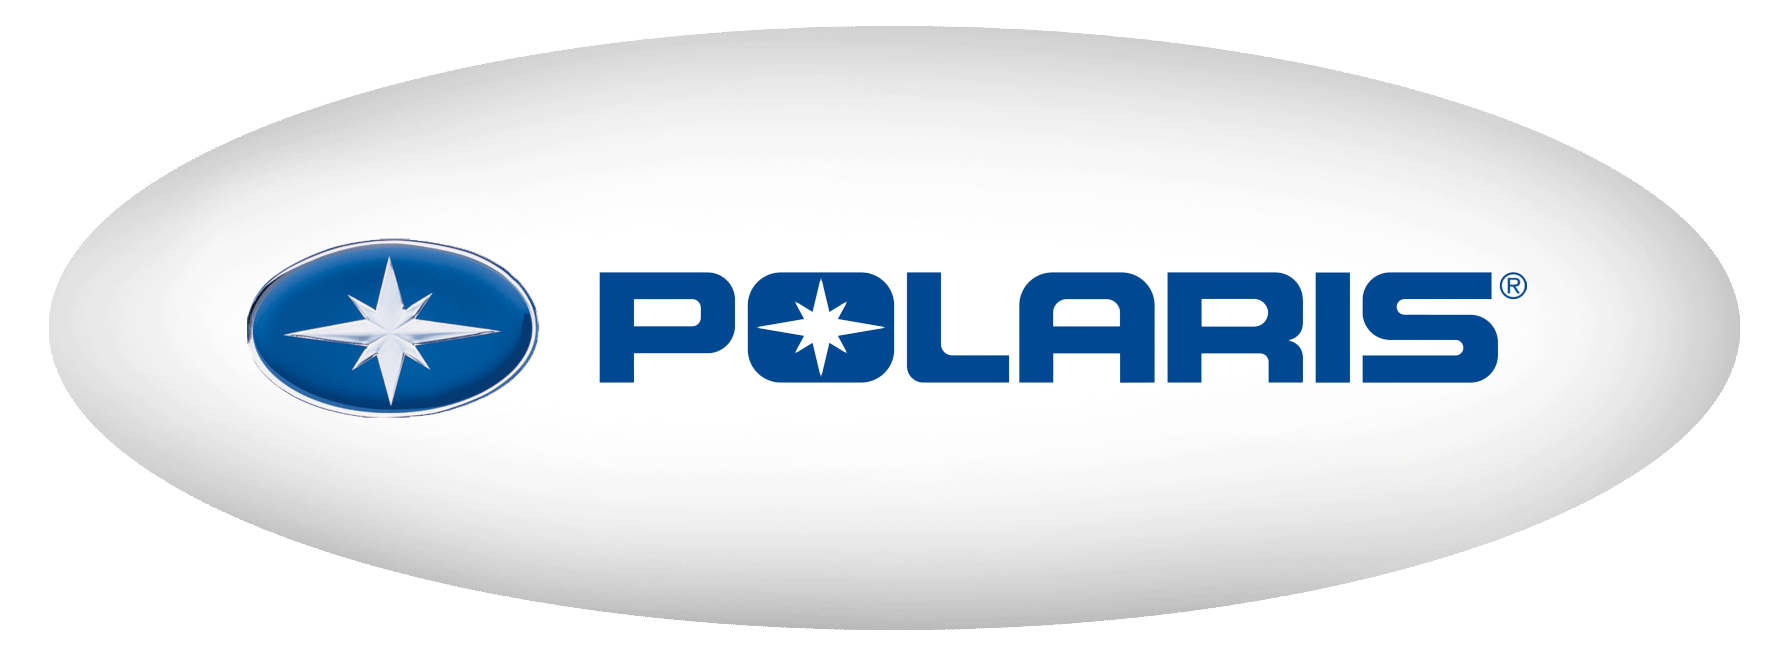 polaris yamaha of louisville louisville ky 502 254 1188